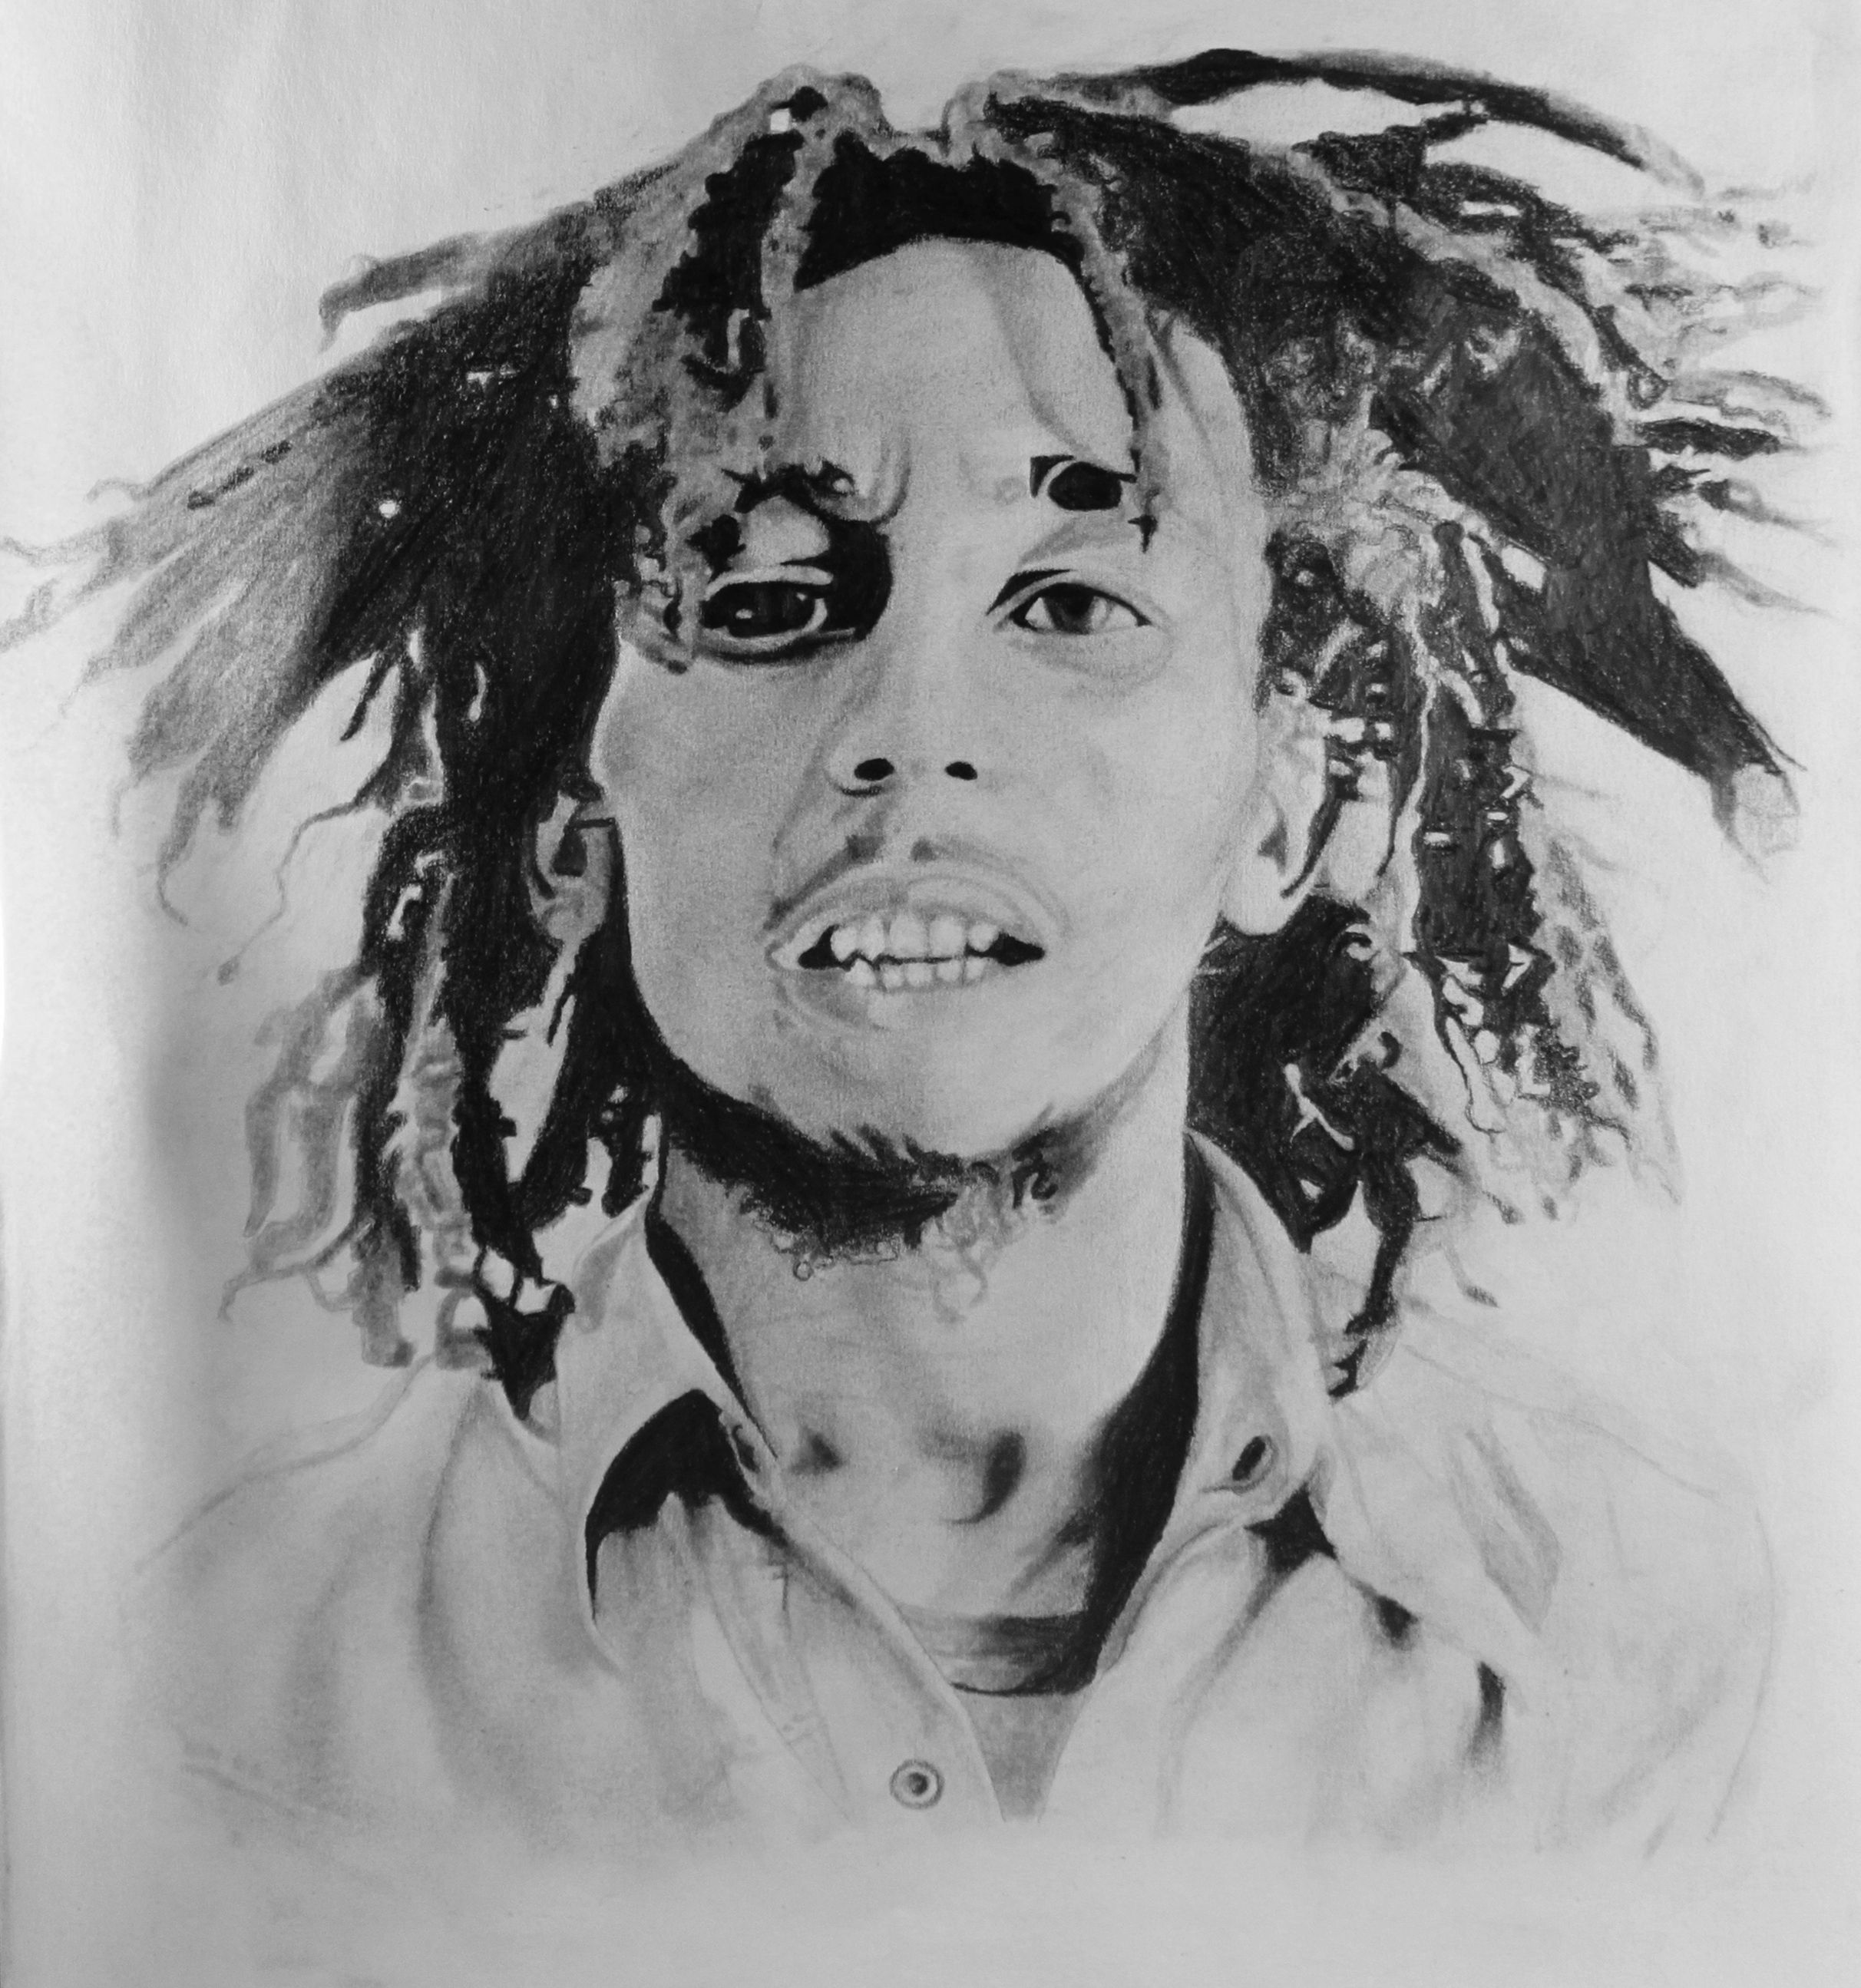 Bob marley drawing portrait realism pencil grayscale